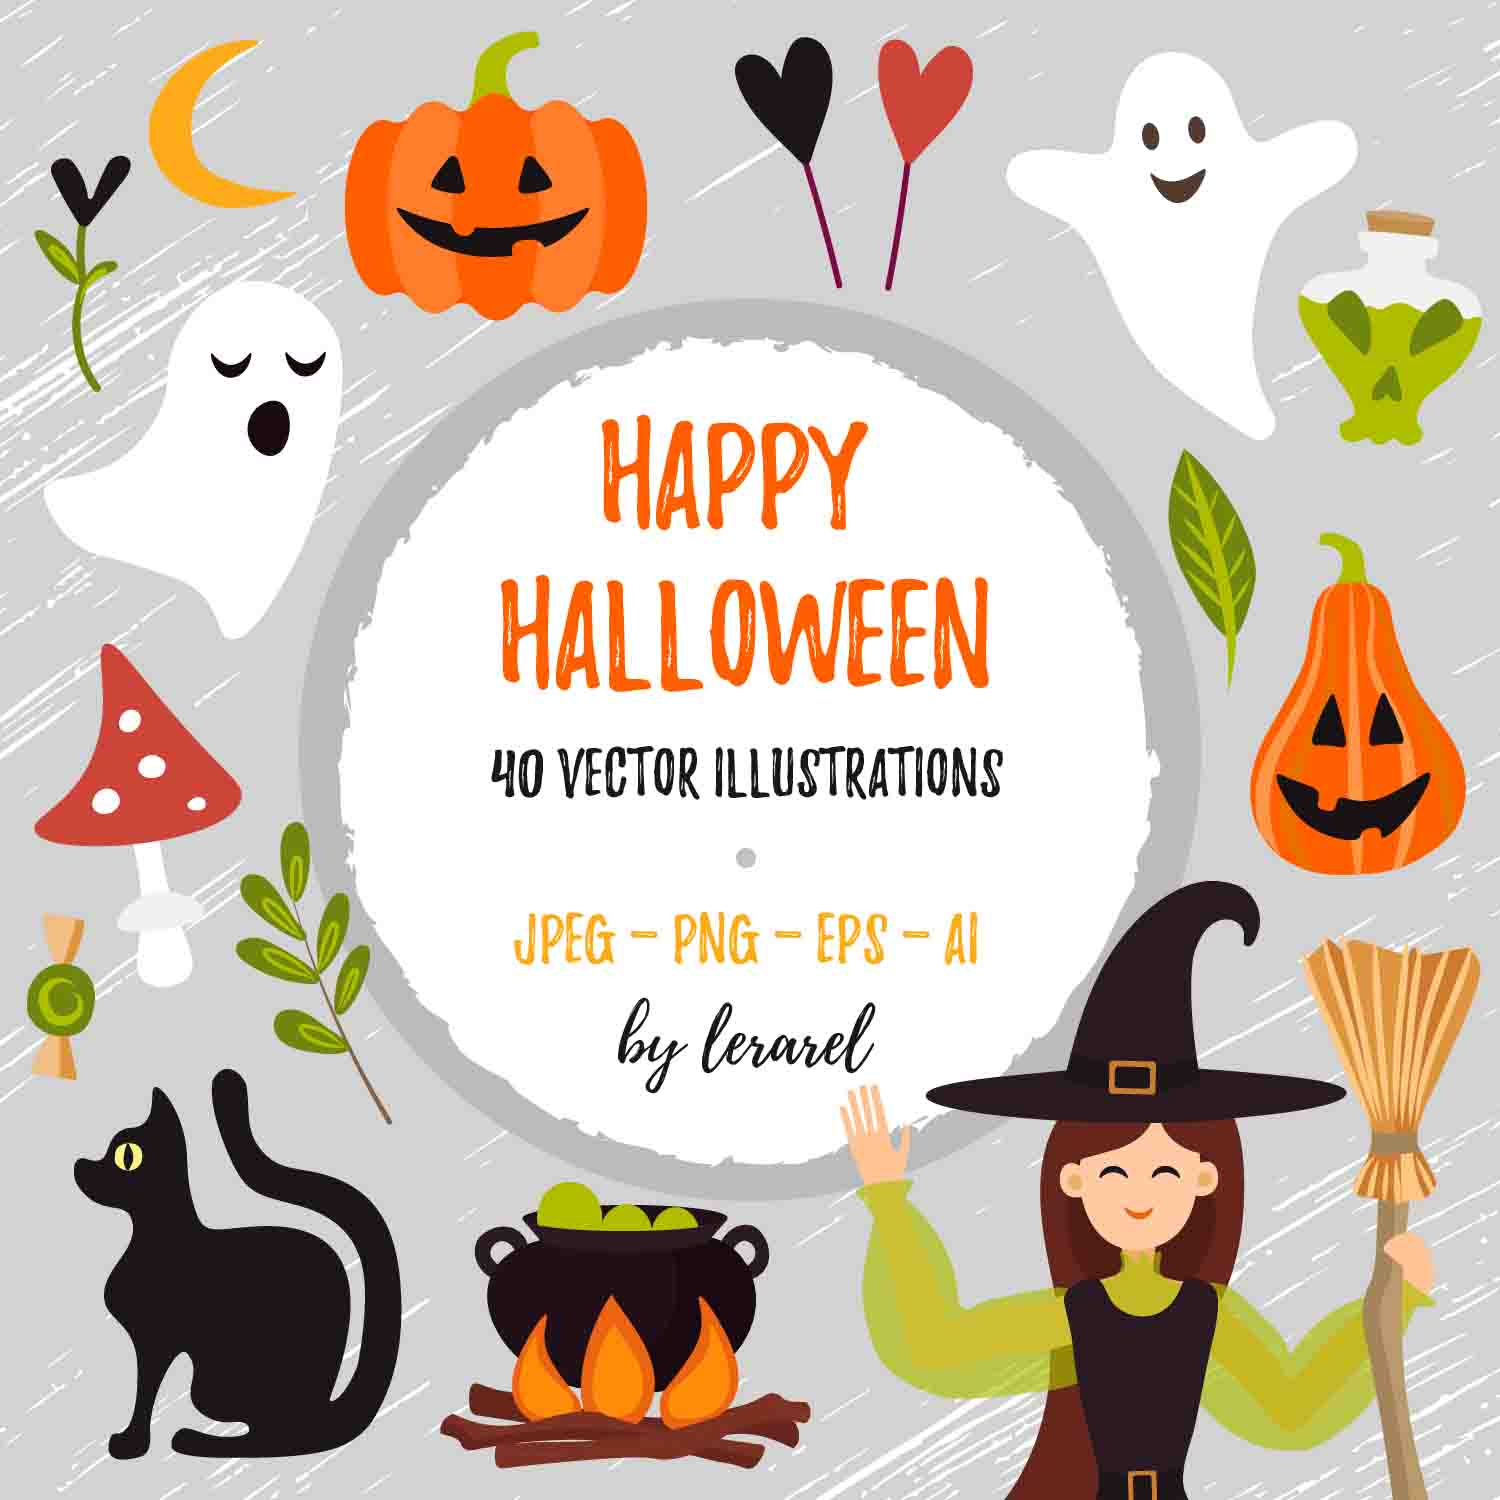 40 Happy Halloween Vector Illustrations cover image.